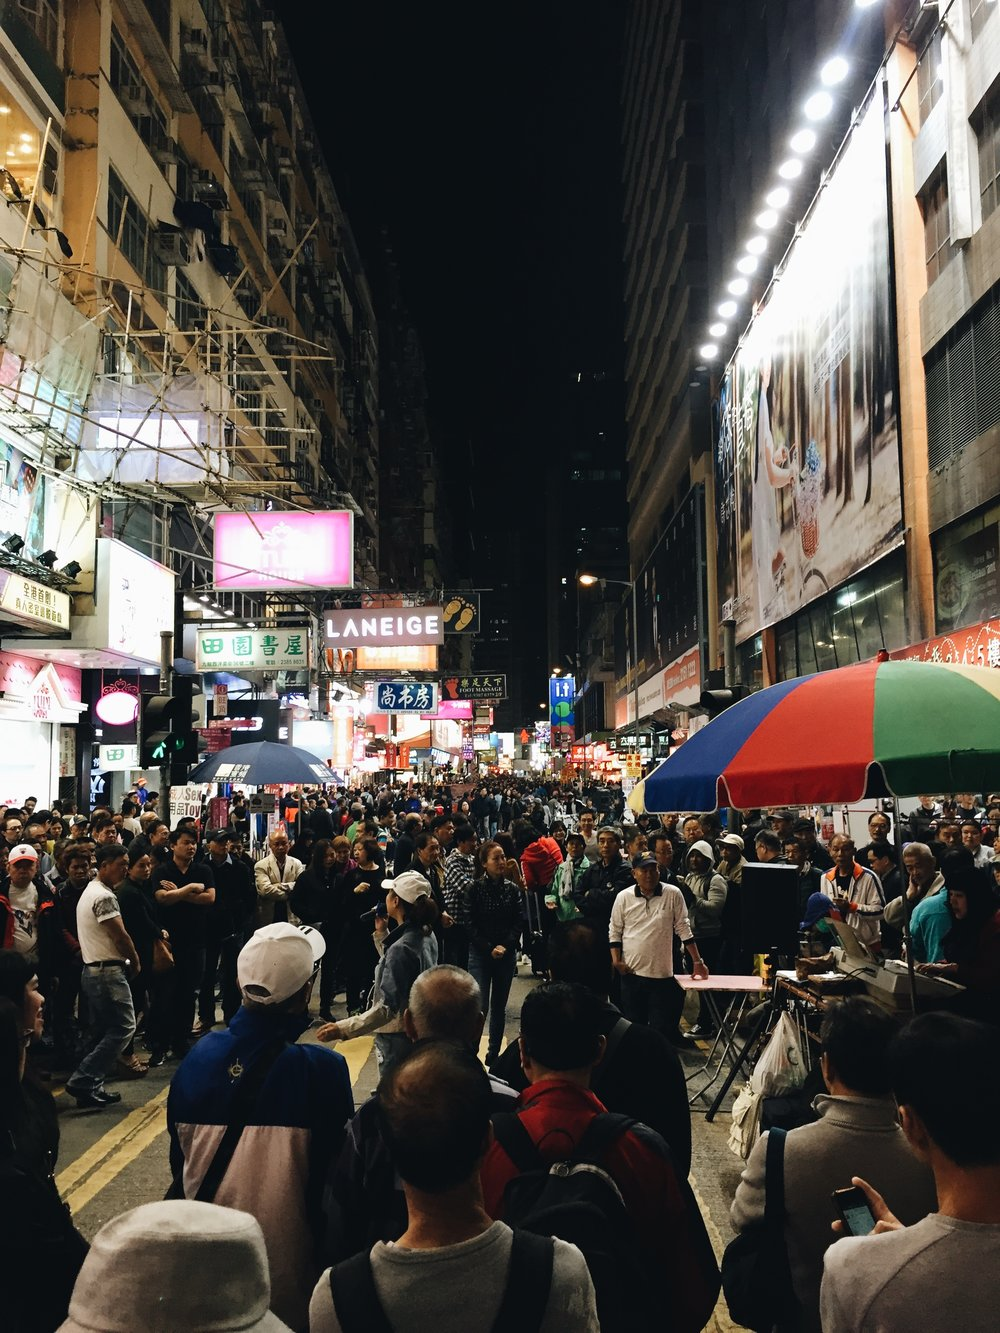 Monk Kok is one of the most populated place in Hong Kong. It's pretty crazy actually.